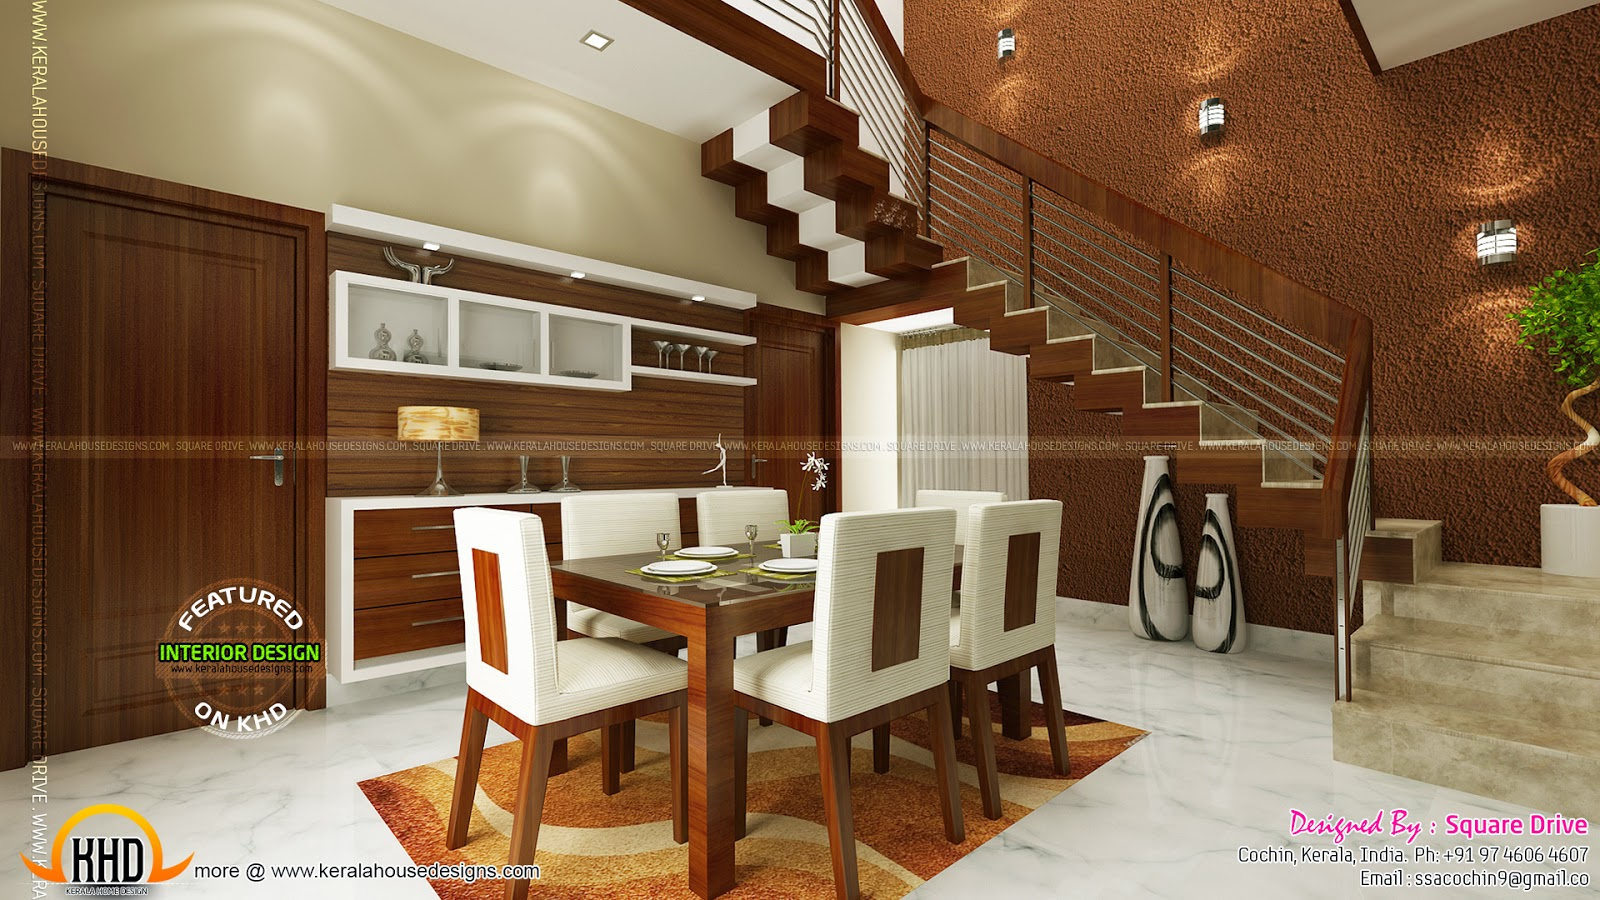 Cochin interior design kerala home design and floor plans for Kerala homes interior designs